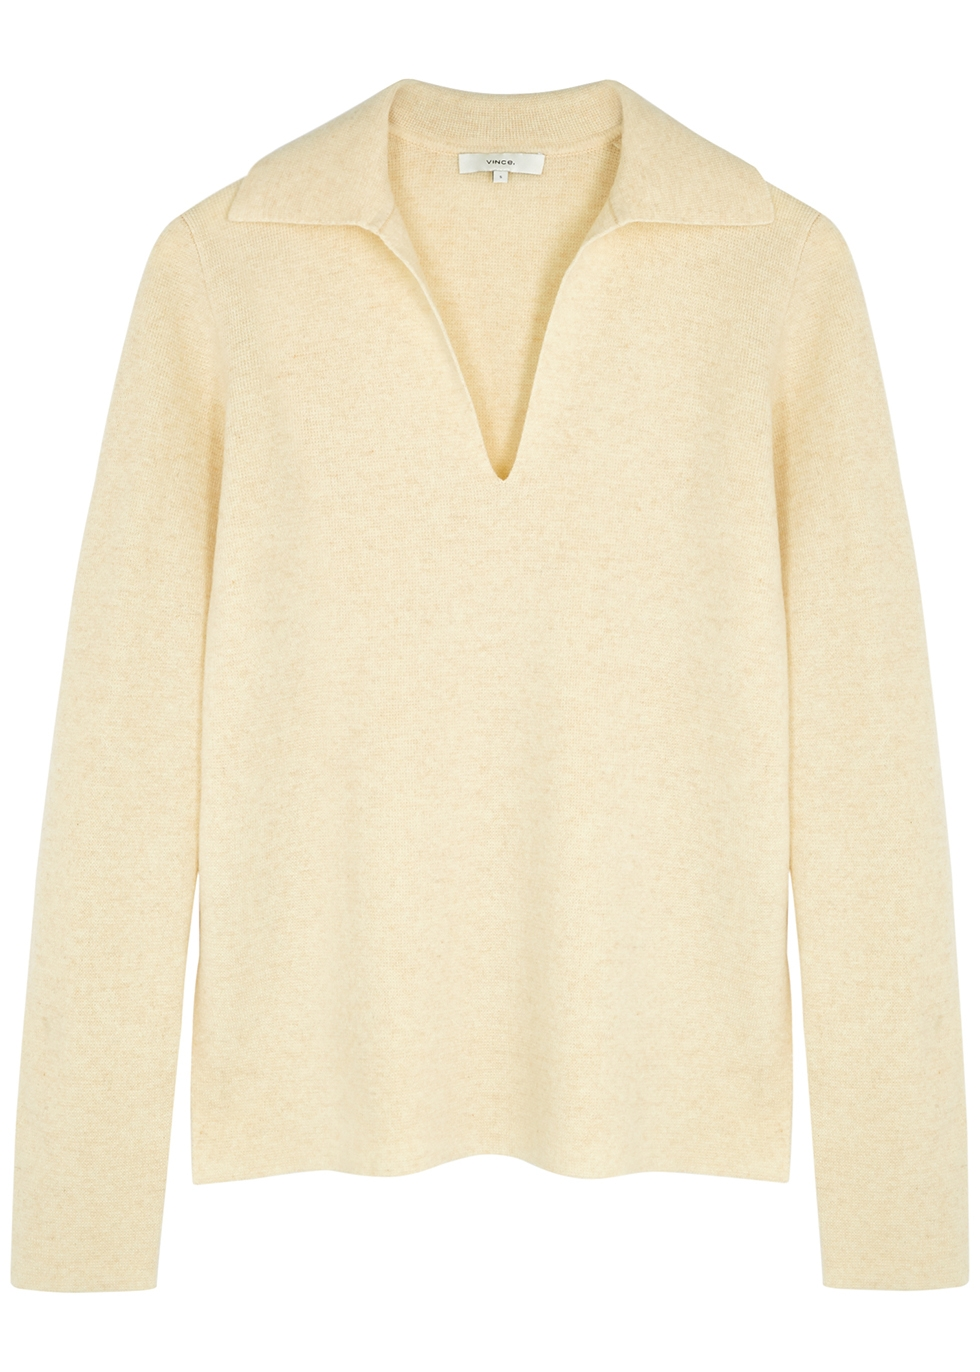 Oatmeal wool and cashmere-blend jumper